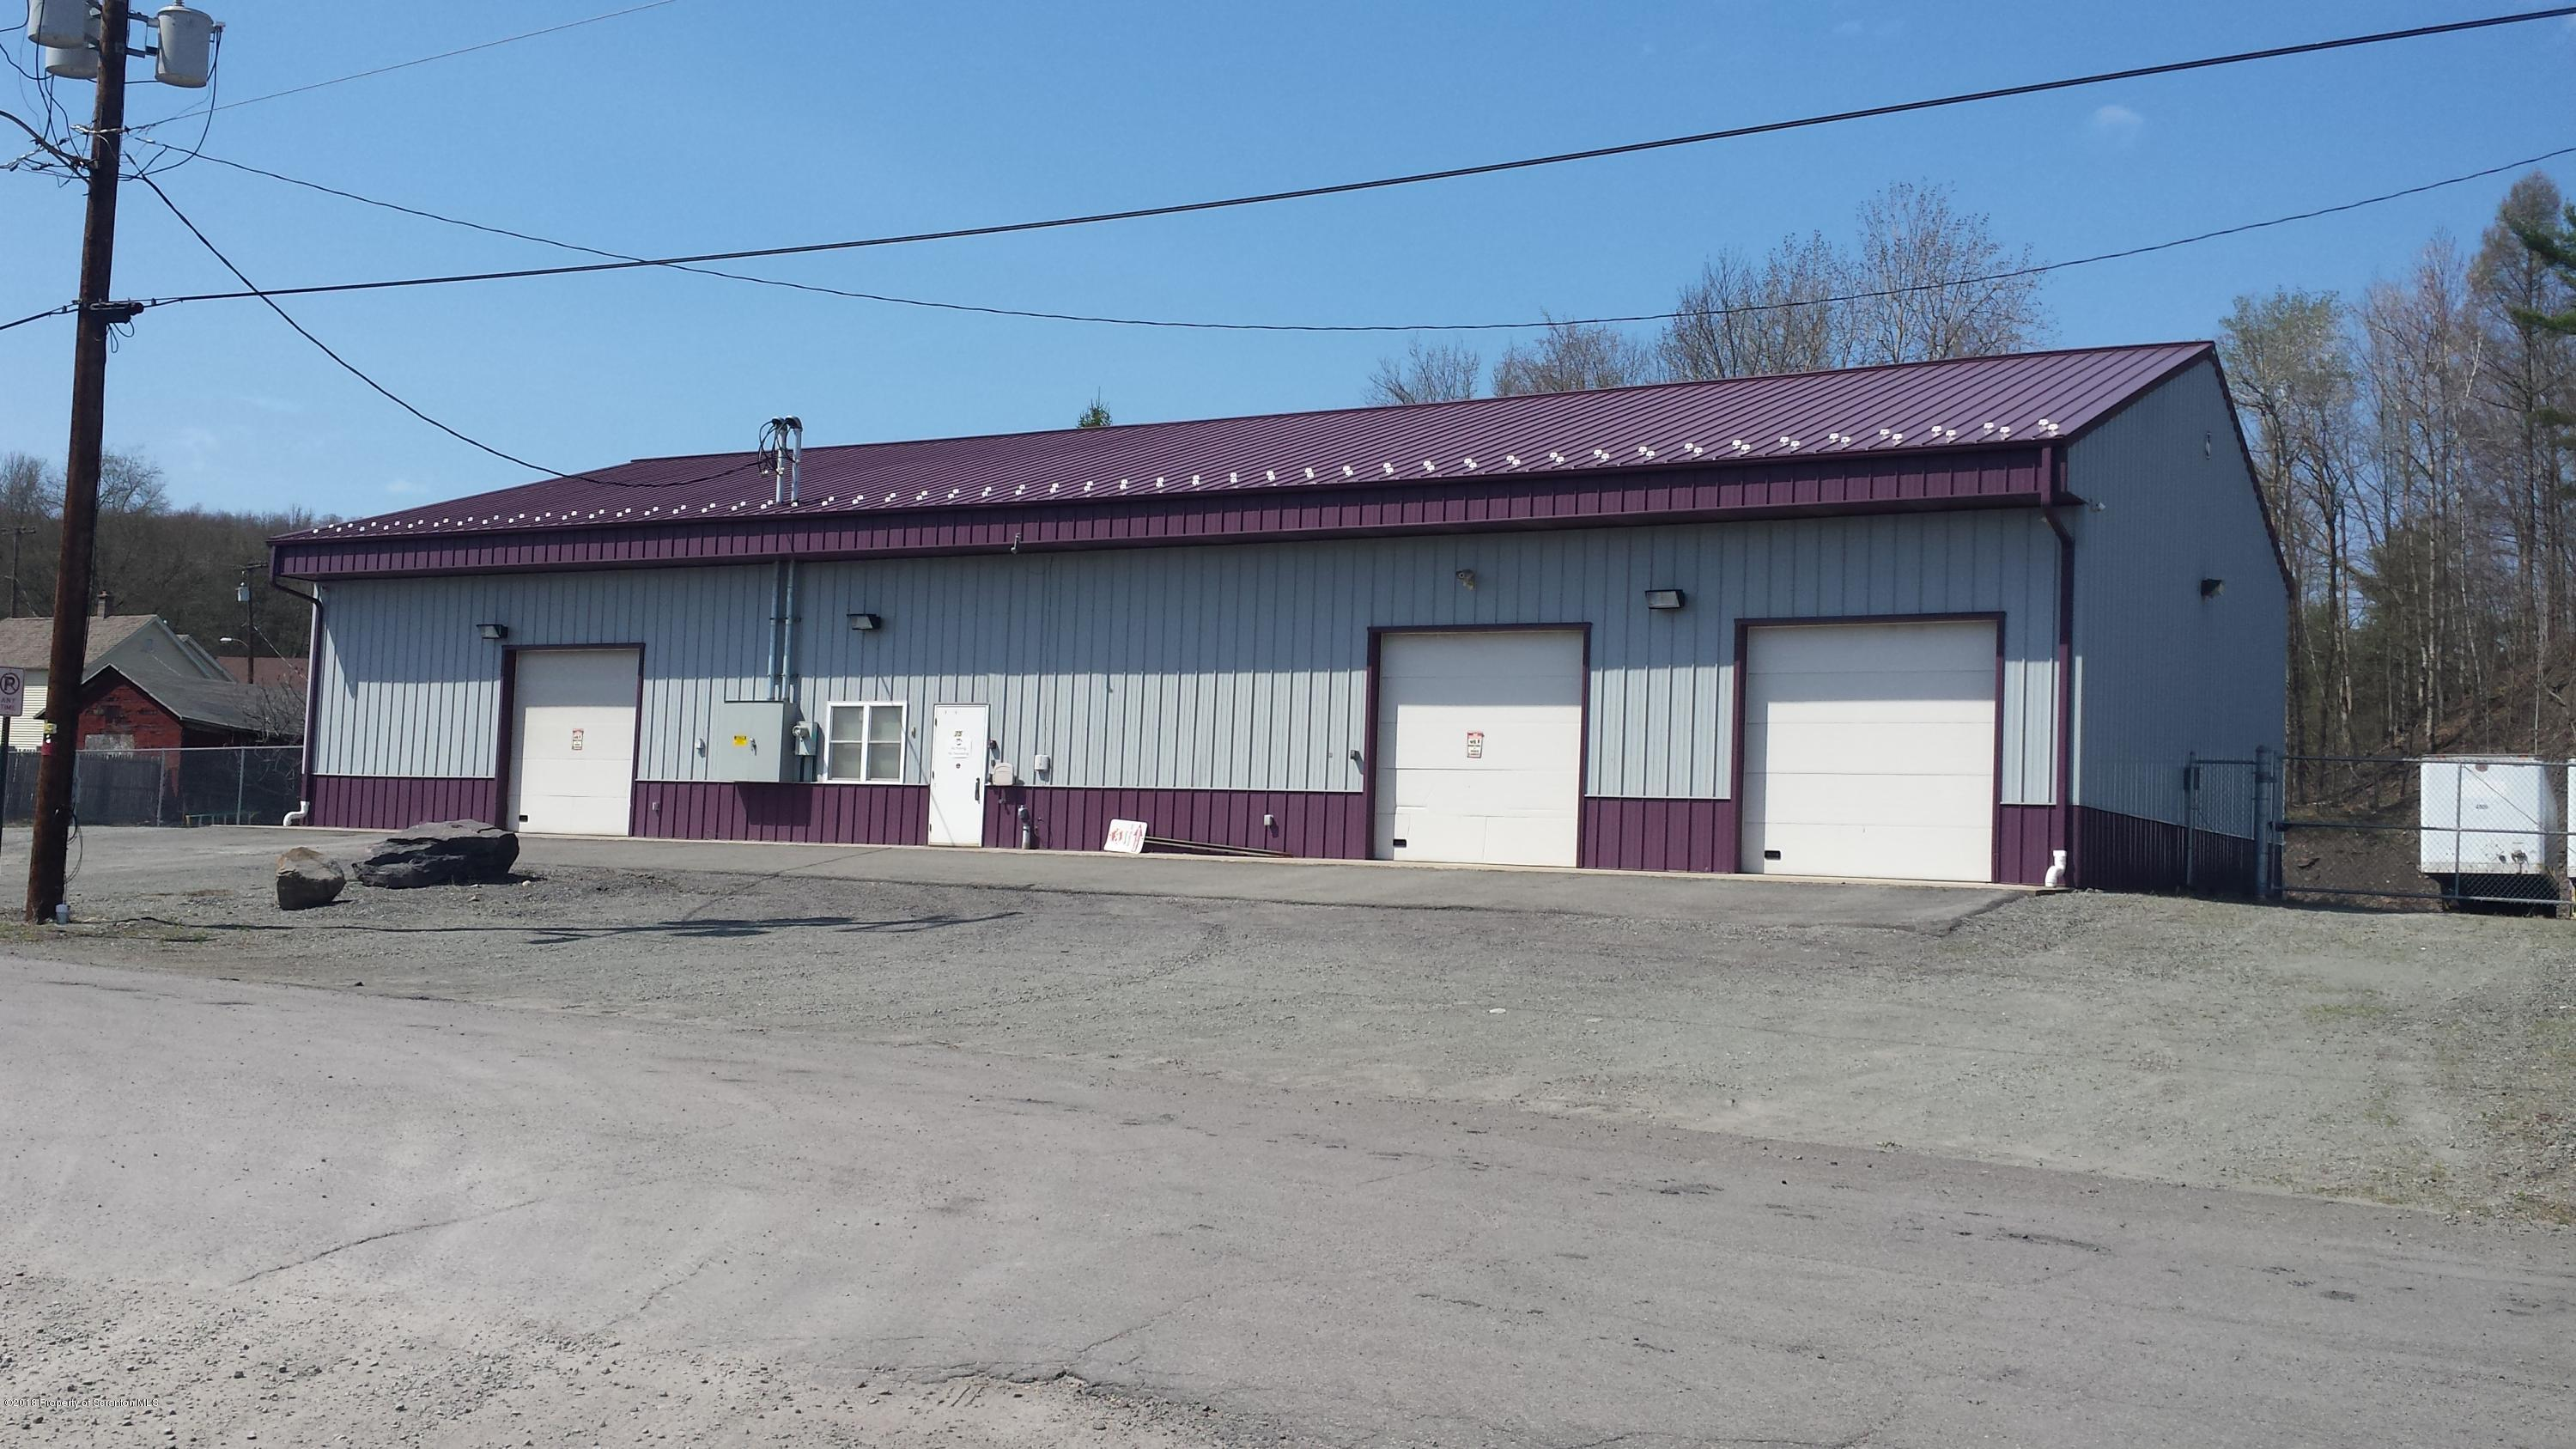 22 Peck Ave, Carbondale, Pennsylvania 18407, ,2 BathroomsBathrooms,Commercial,For Sale,Peck,18-1908